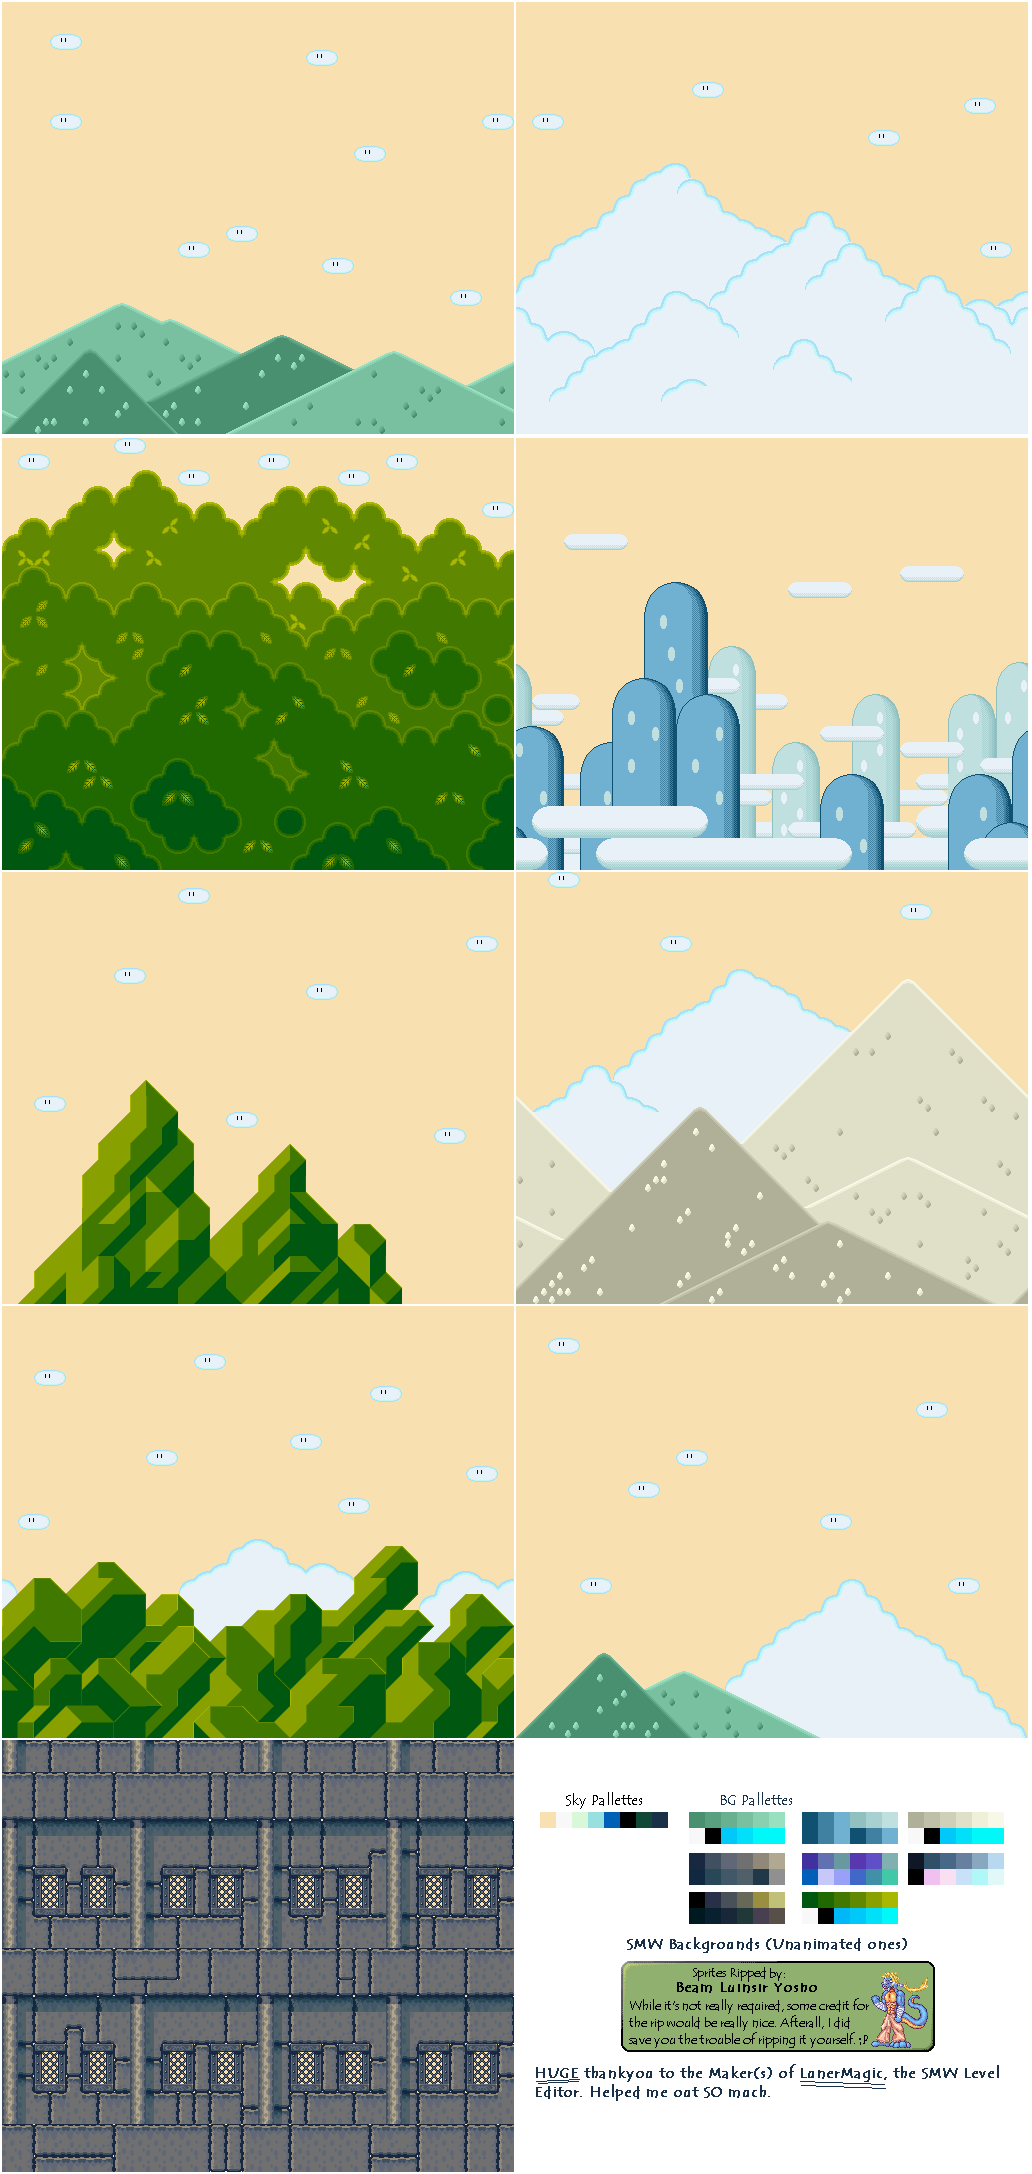 75+] Super Mario World Wallpaper on WallpaperSafari